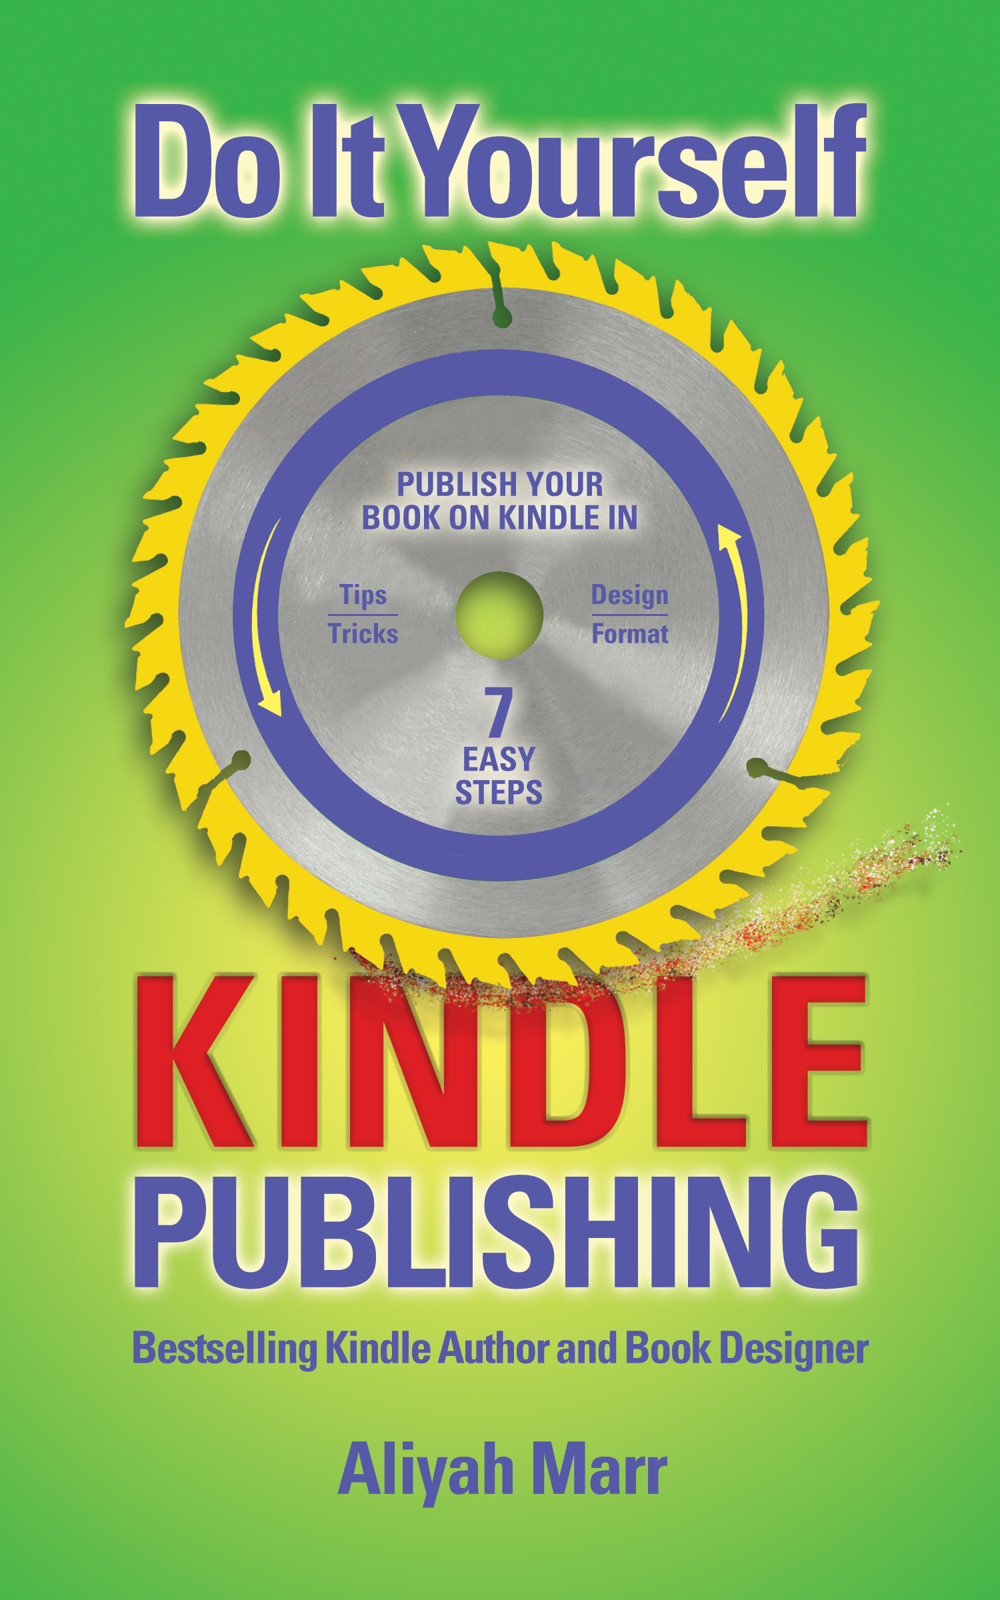 Do it yourself kindle publishing by aliyah marr parallel mindzz solutioingenieria Images